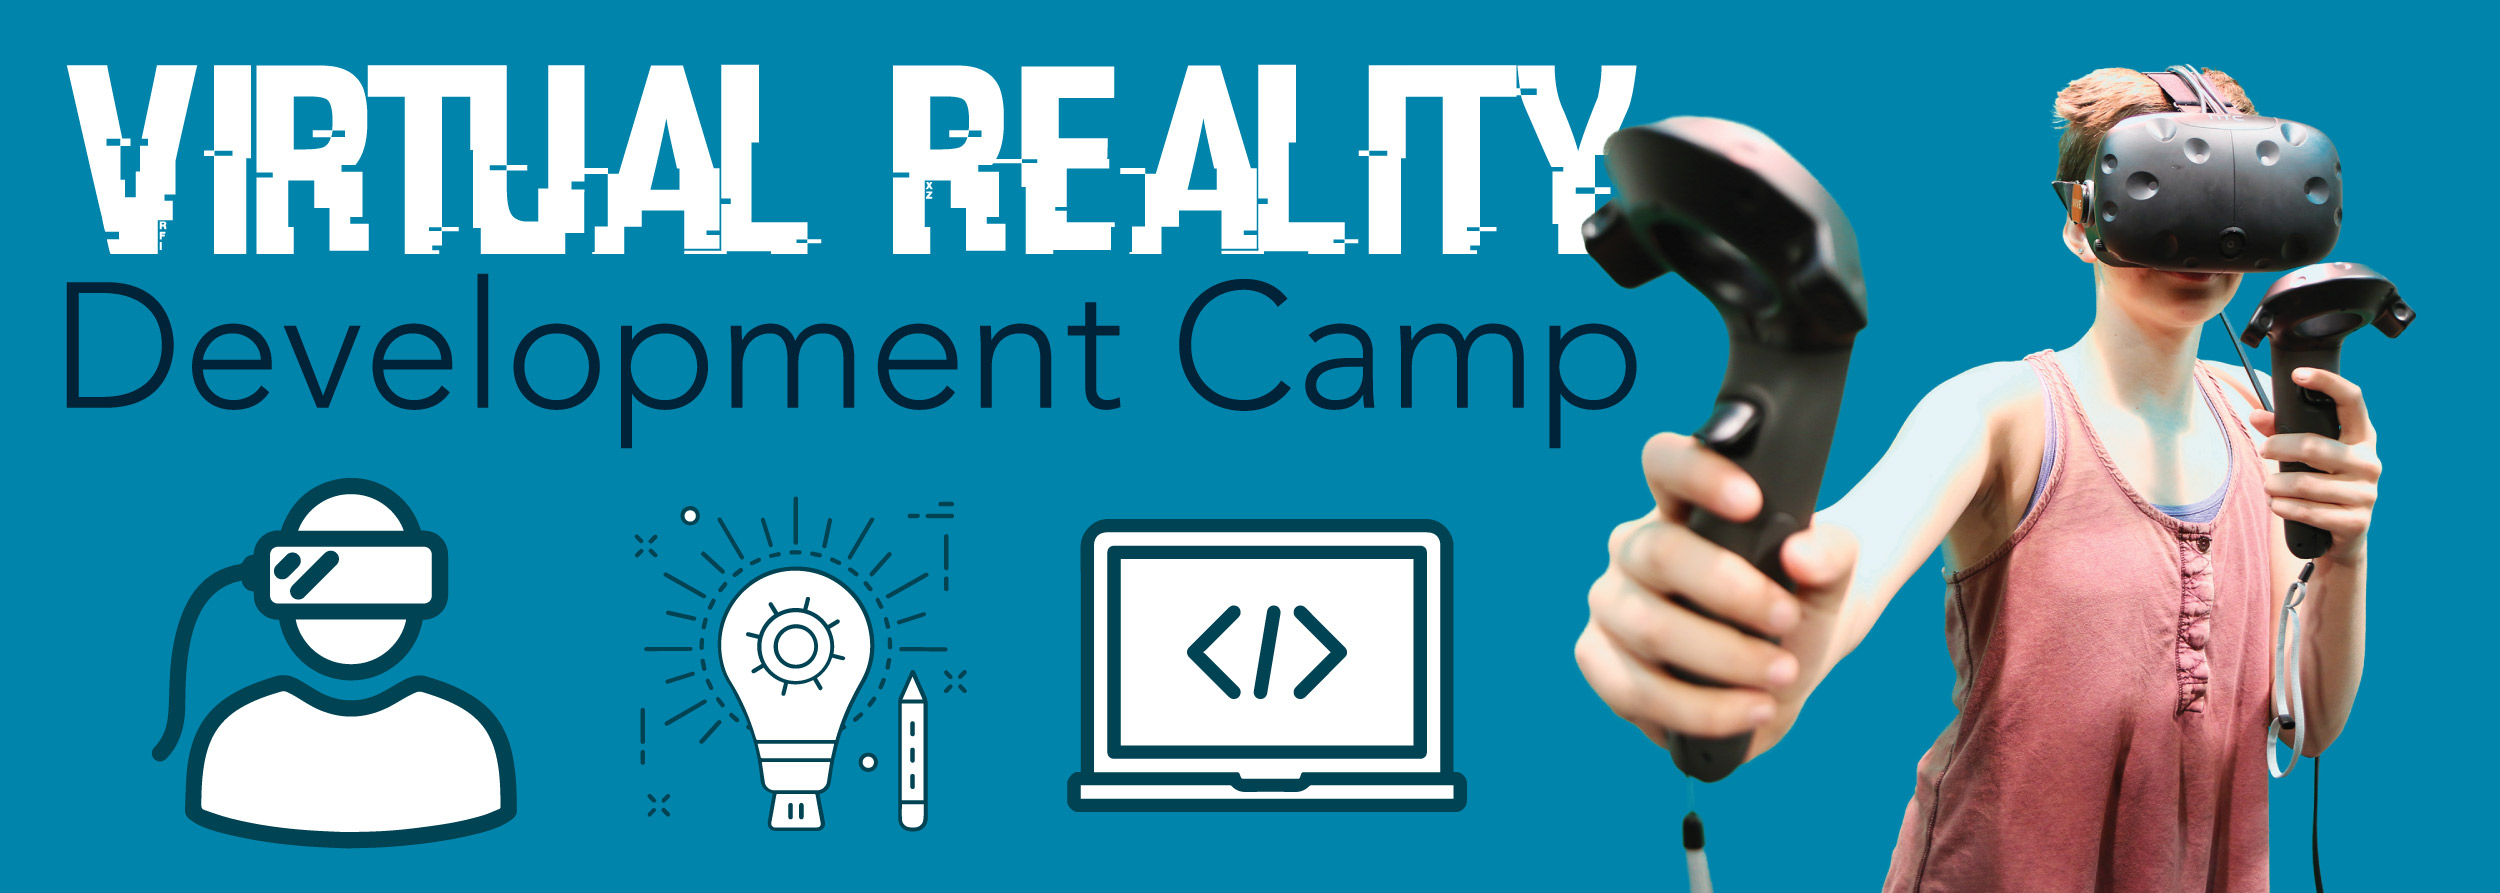 teen_virtual-reality-development-camp_web-header_05-17.jpg